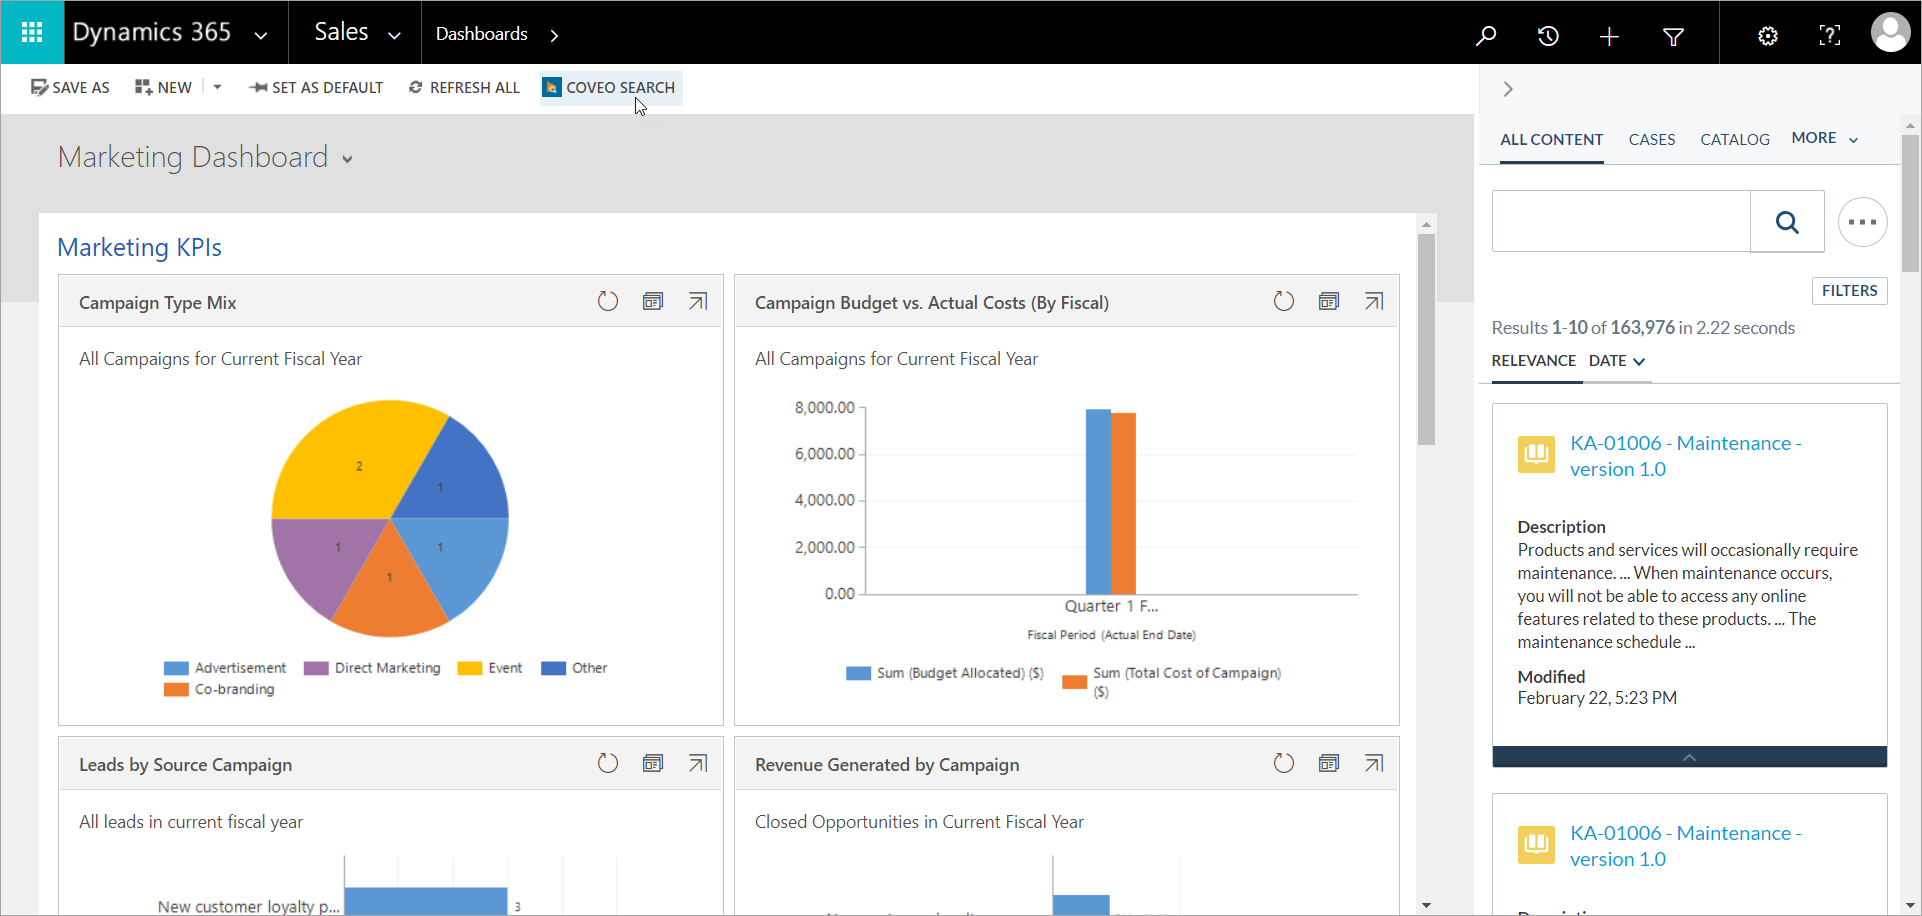 Dynamics Marketing Dashboard and Coveo side panel on the right